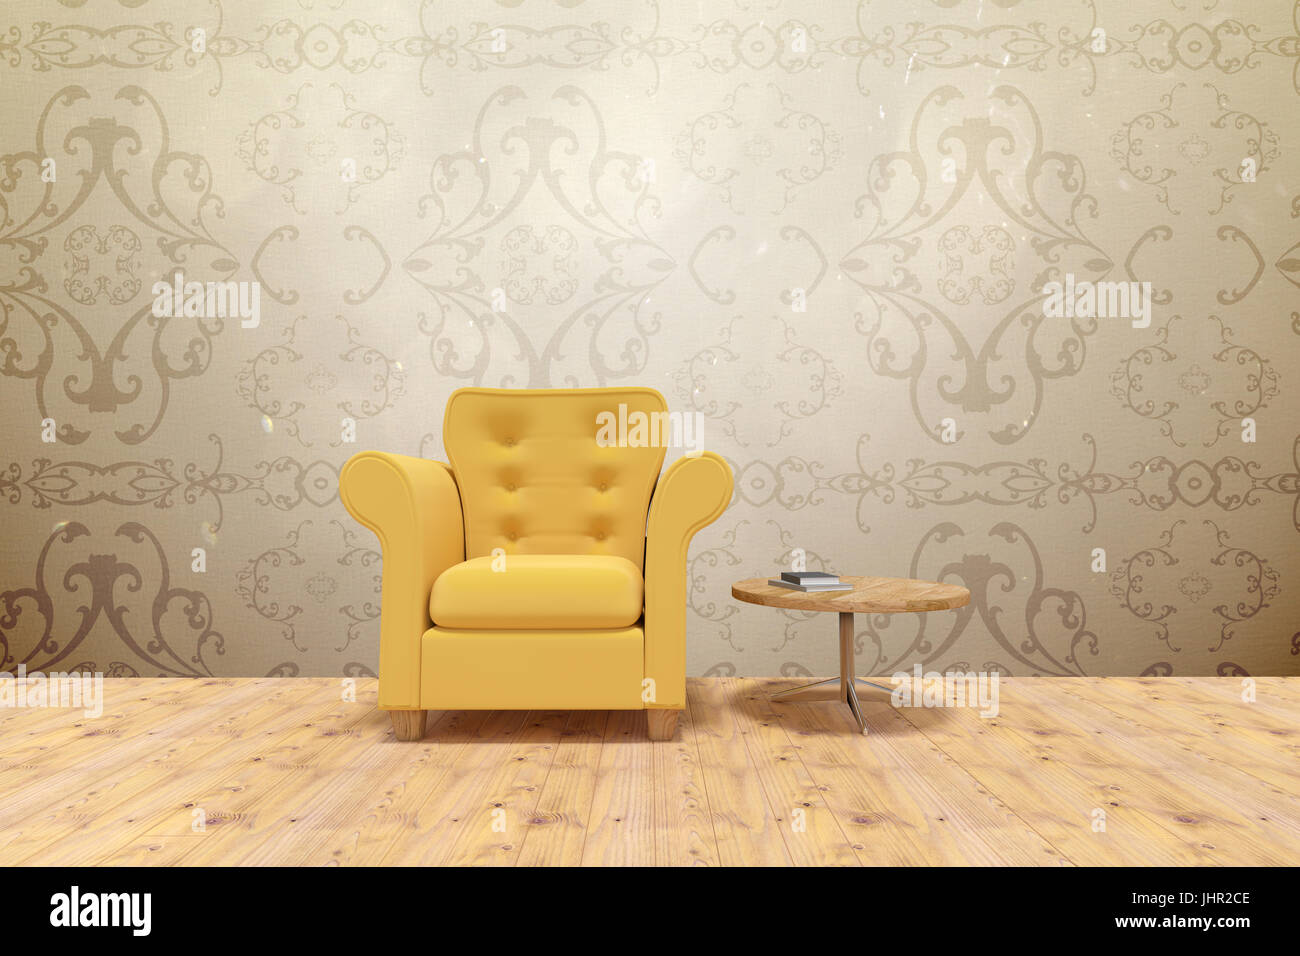 Yellow armchair by table on floor  against elegant patterned wallpaper in neutral tones - Stock Image